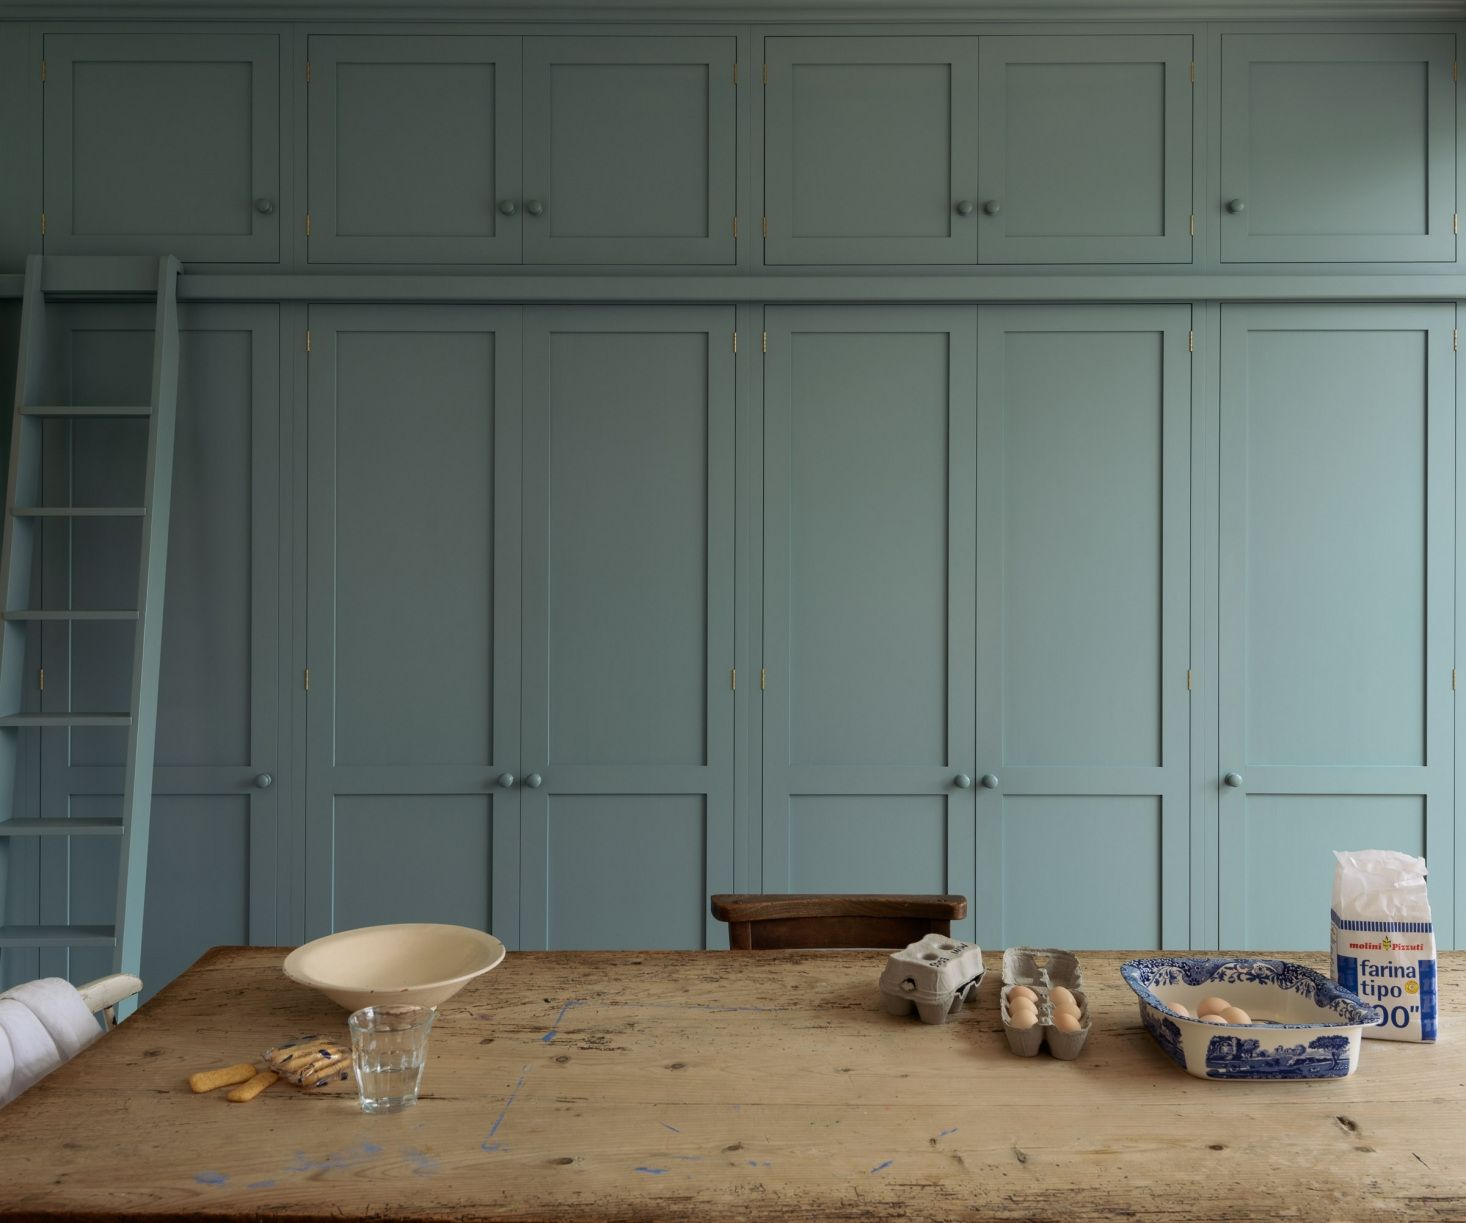 Remodeling 101 A Guide To The Only 6 Kitchen Cabinet Styles You Need To Know Remodelista Built In Cupboards Kitchen Cabinet Styles Cabinet Styles